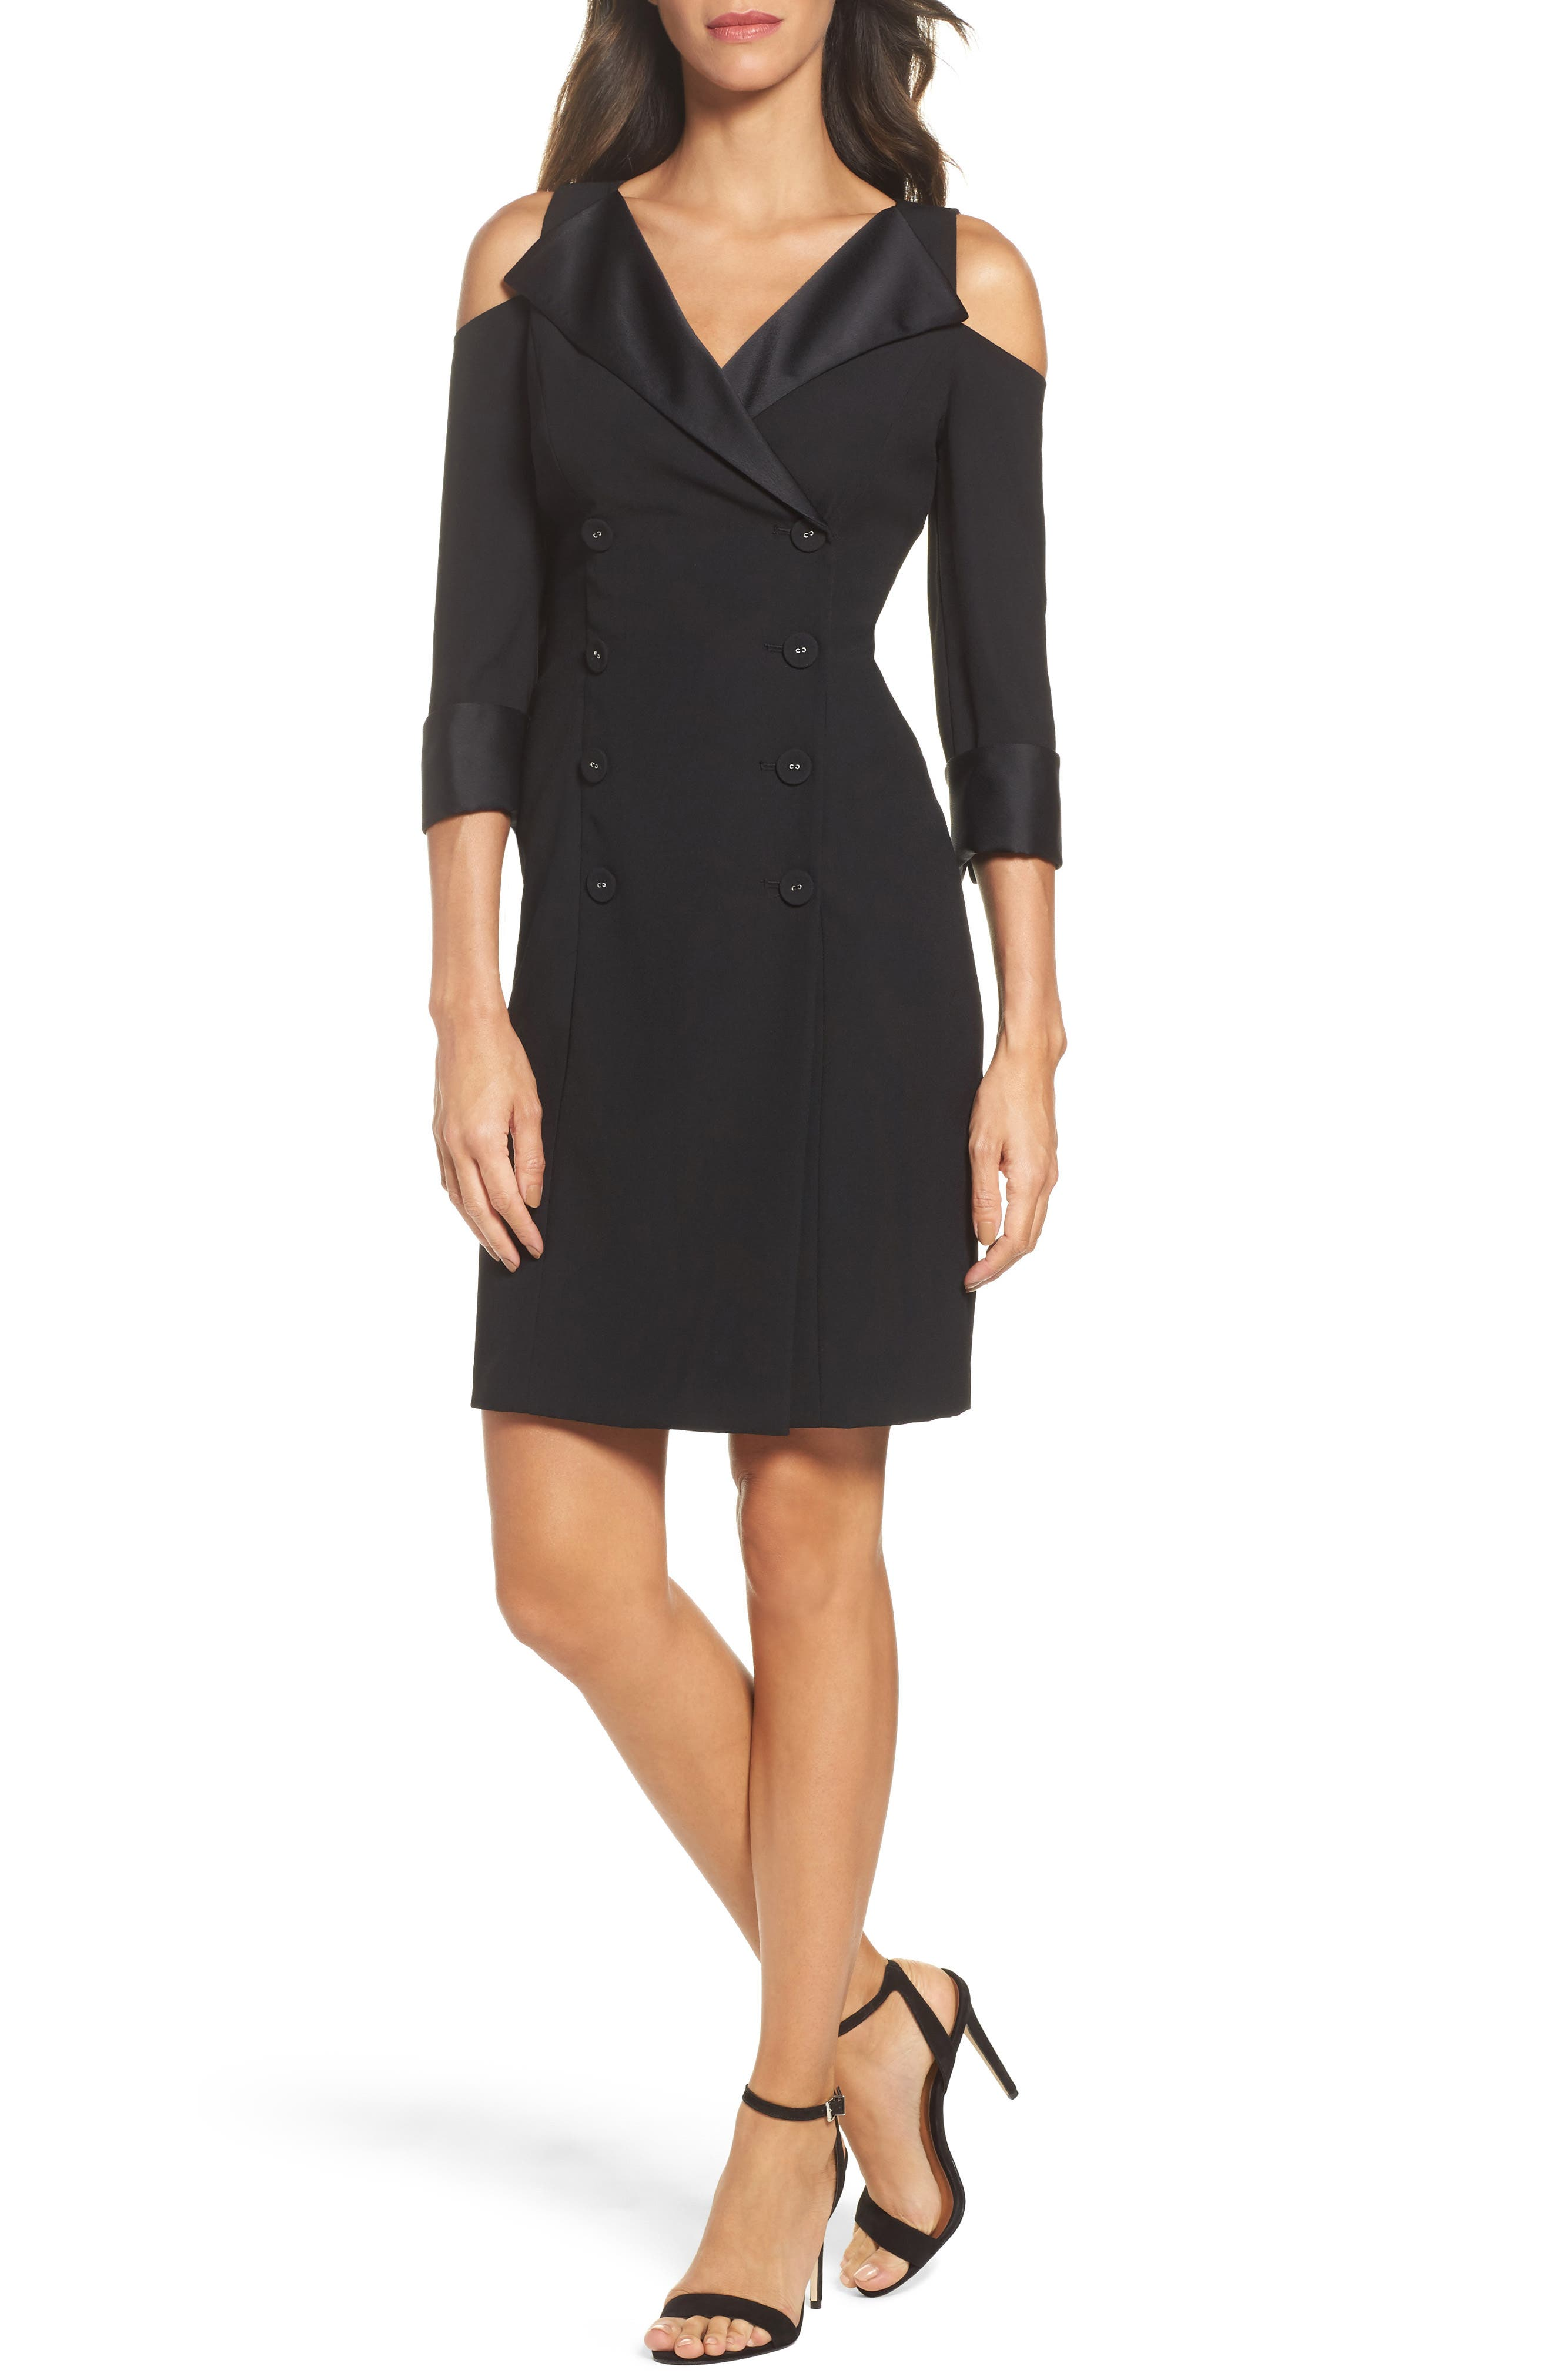 Alternate Image 1 Selected - Adrianna Papell Tuxedo Cold Shoulder Sheath Dress